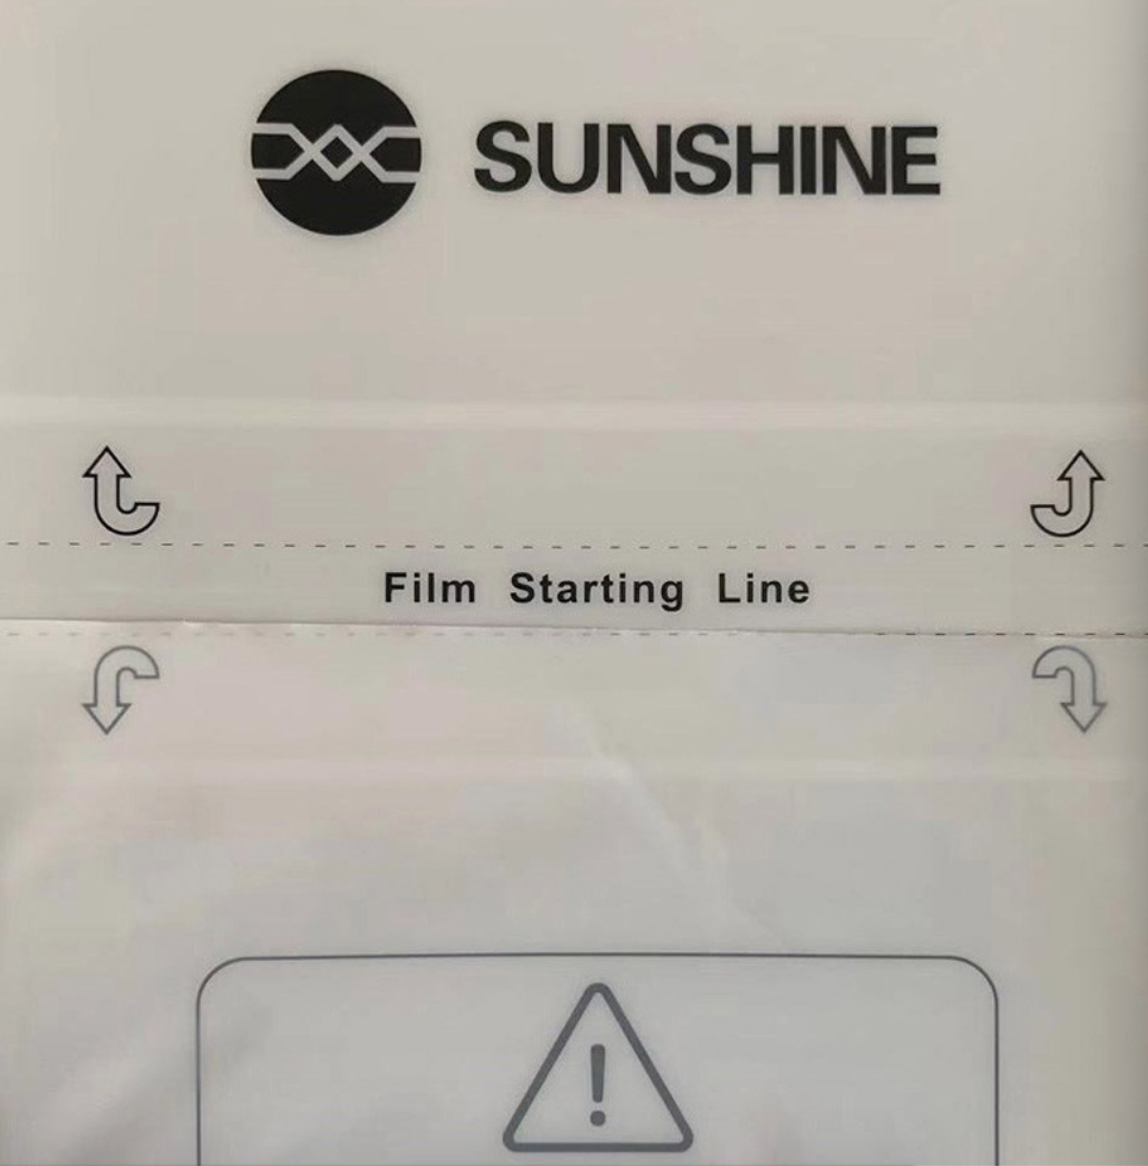 50pcs/lot Sunshine Flexible Hydrogel Film SS-057 For SS-890C Auto Film Cutting Machine Mobile Phone Screen Front Film Cut